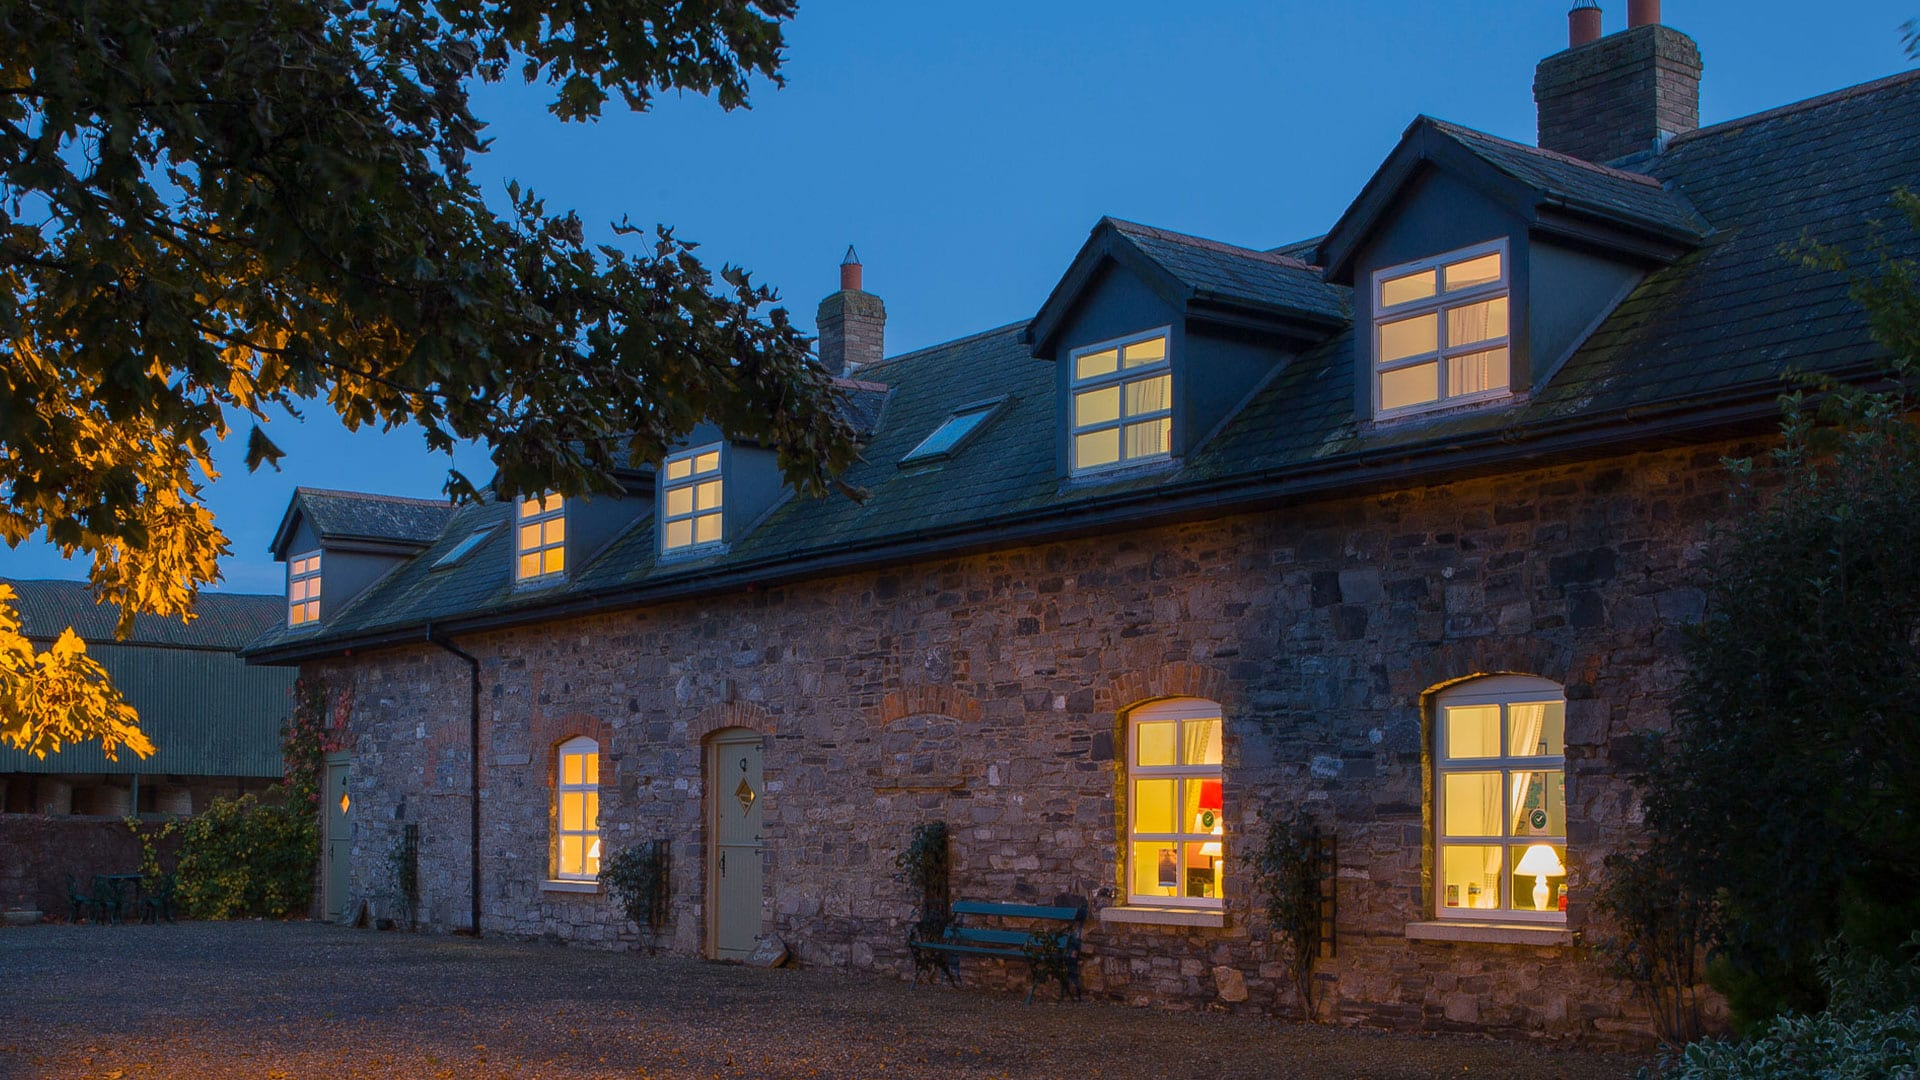 Book Online Self Catering Cottage Dunboyne Meath Dark-Night-House-Cottage-View-Holiday-Homes-Ireland-Meath-Dunshaughlin-Self-Catering-1